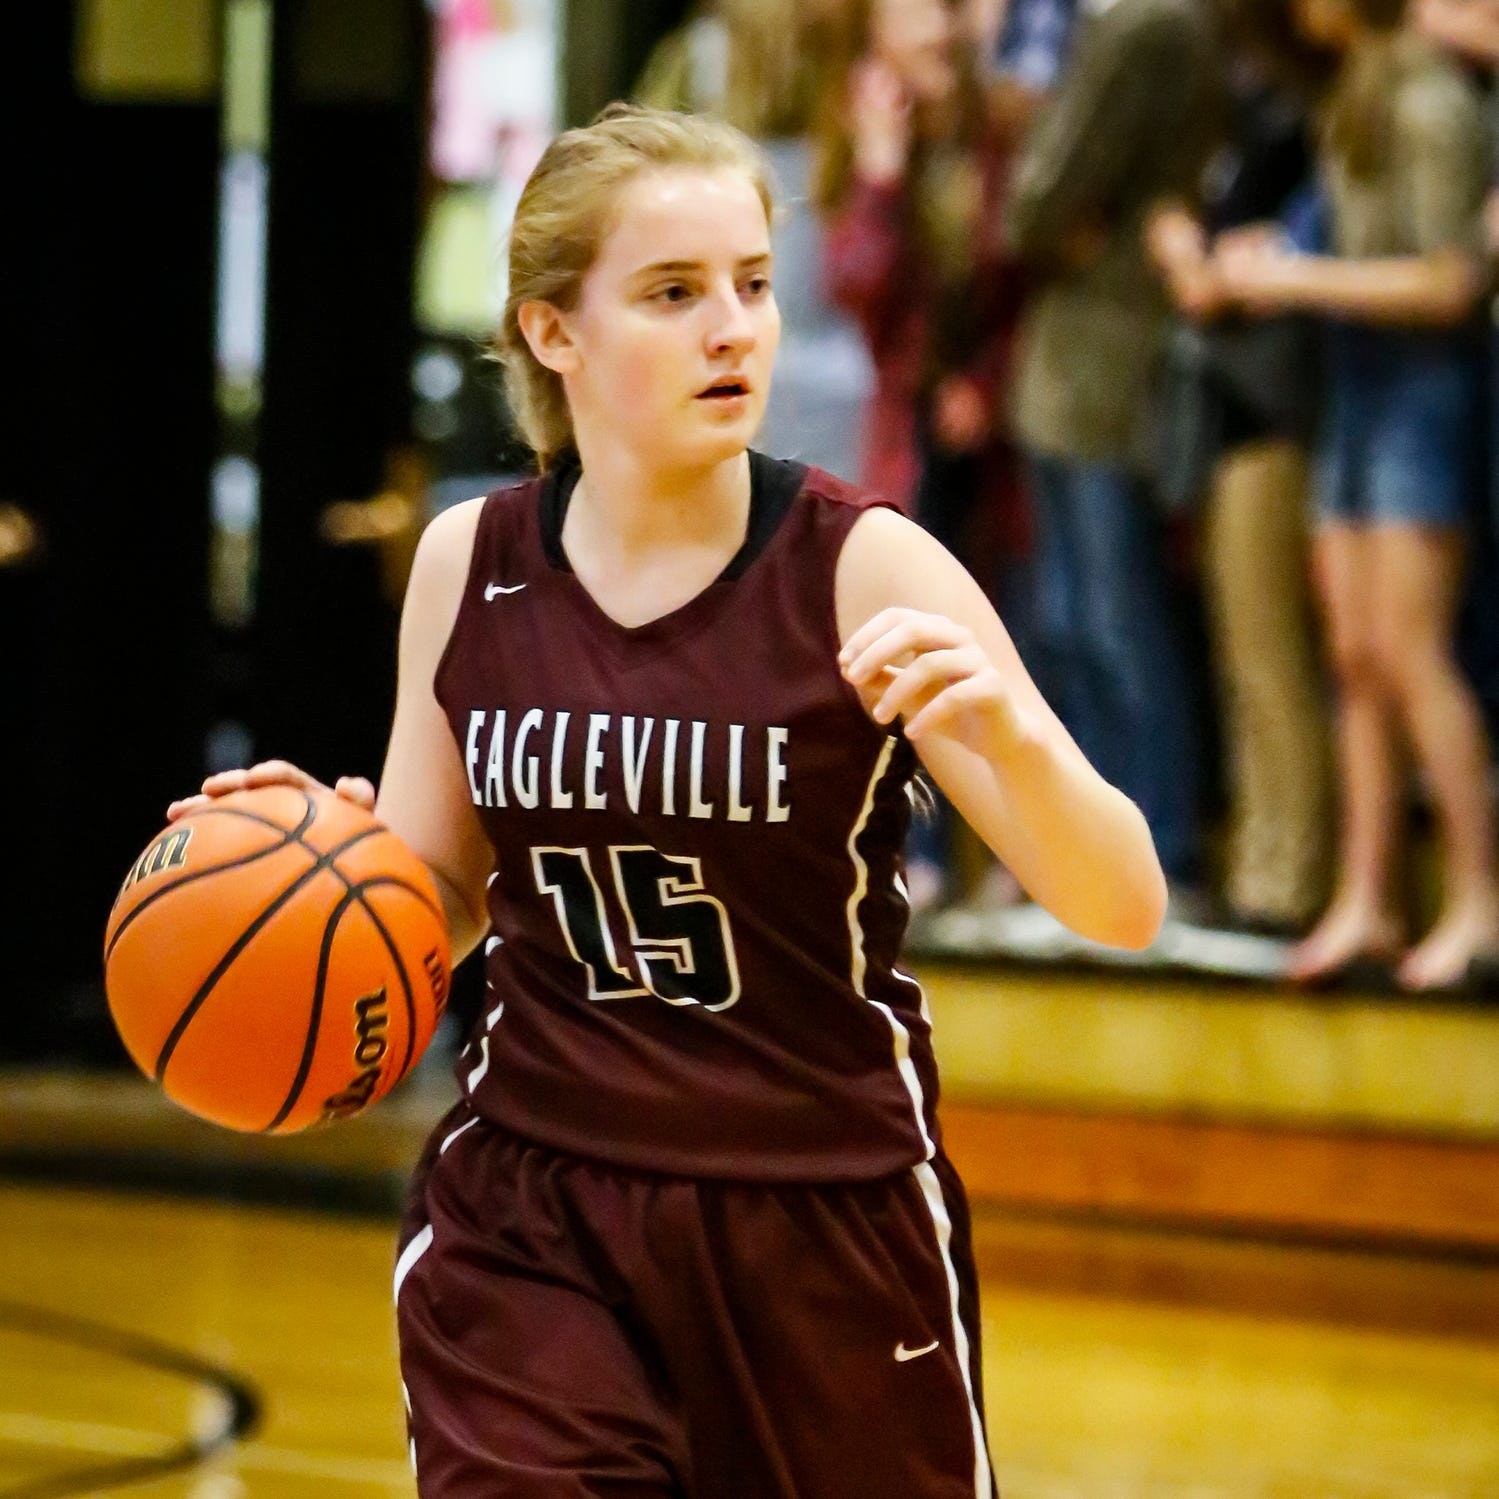 Eagleville's Makayla Moates directs traffic during Thursday's win at Central Magnet.